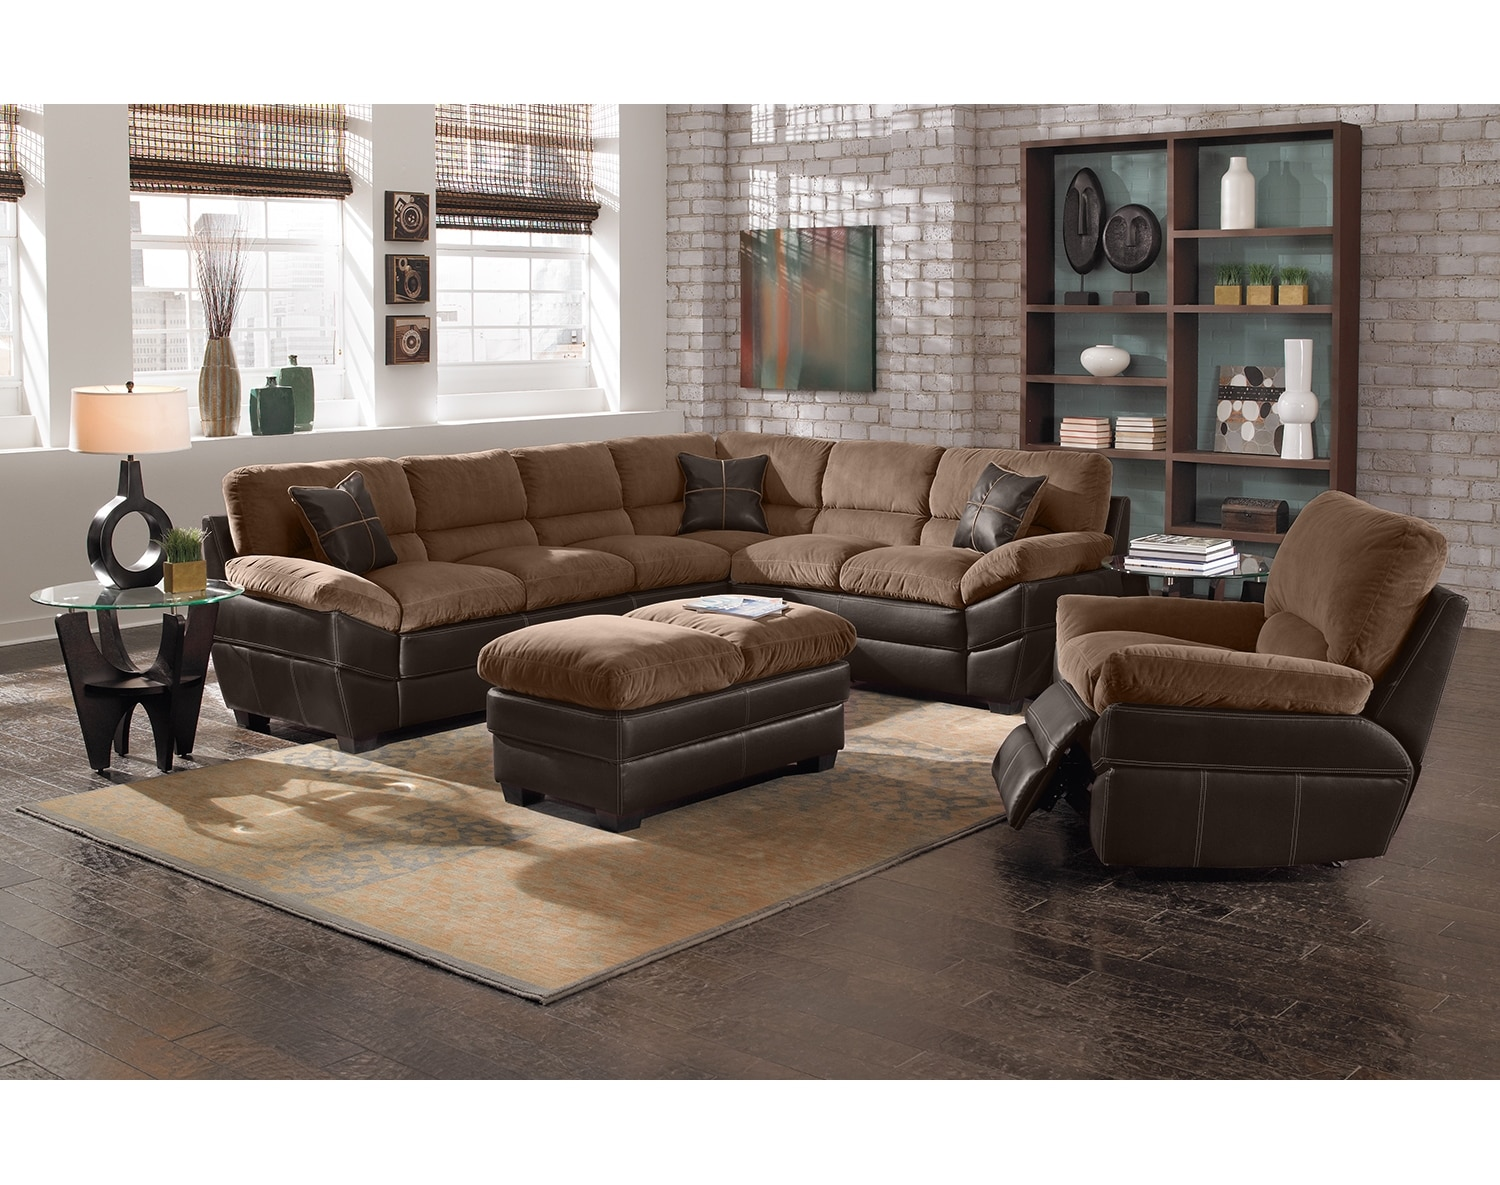 The Chandler Sectional Collection - Beige